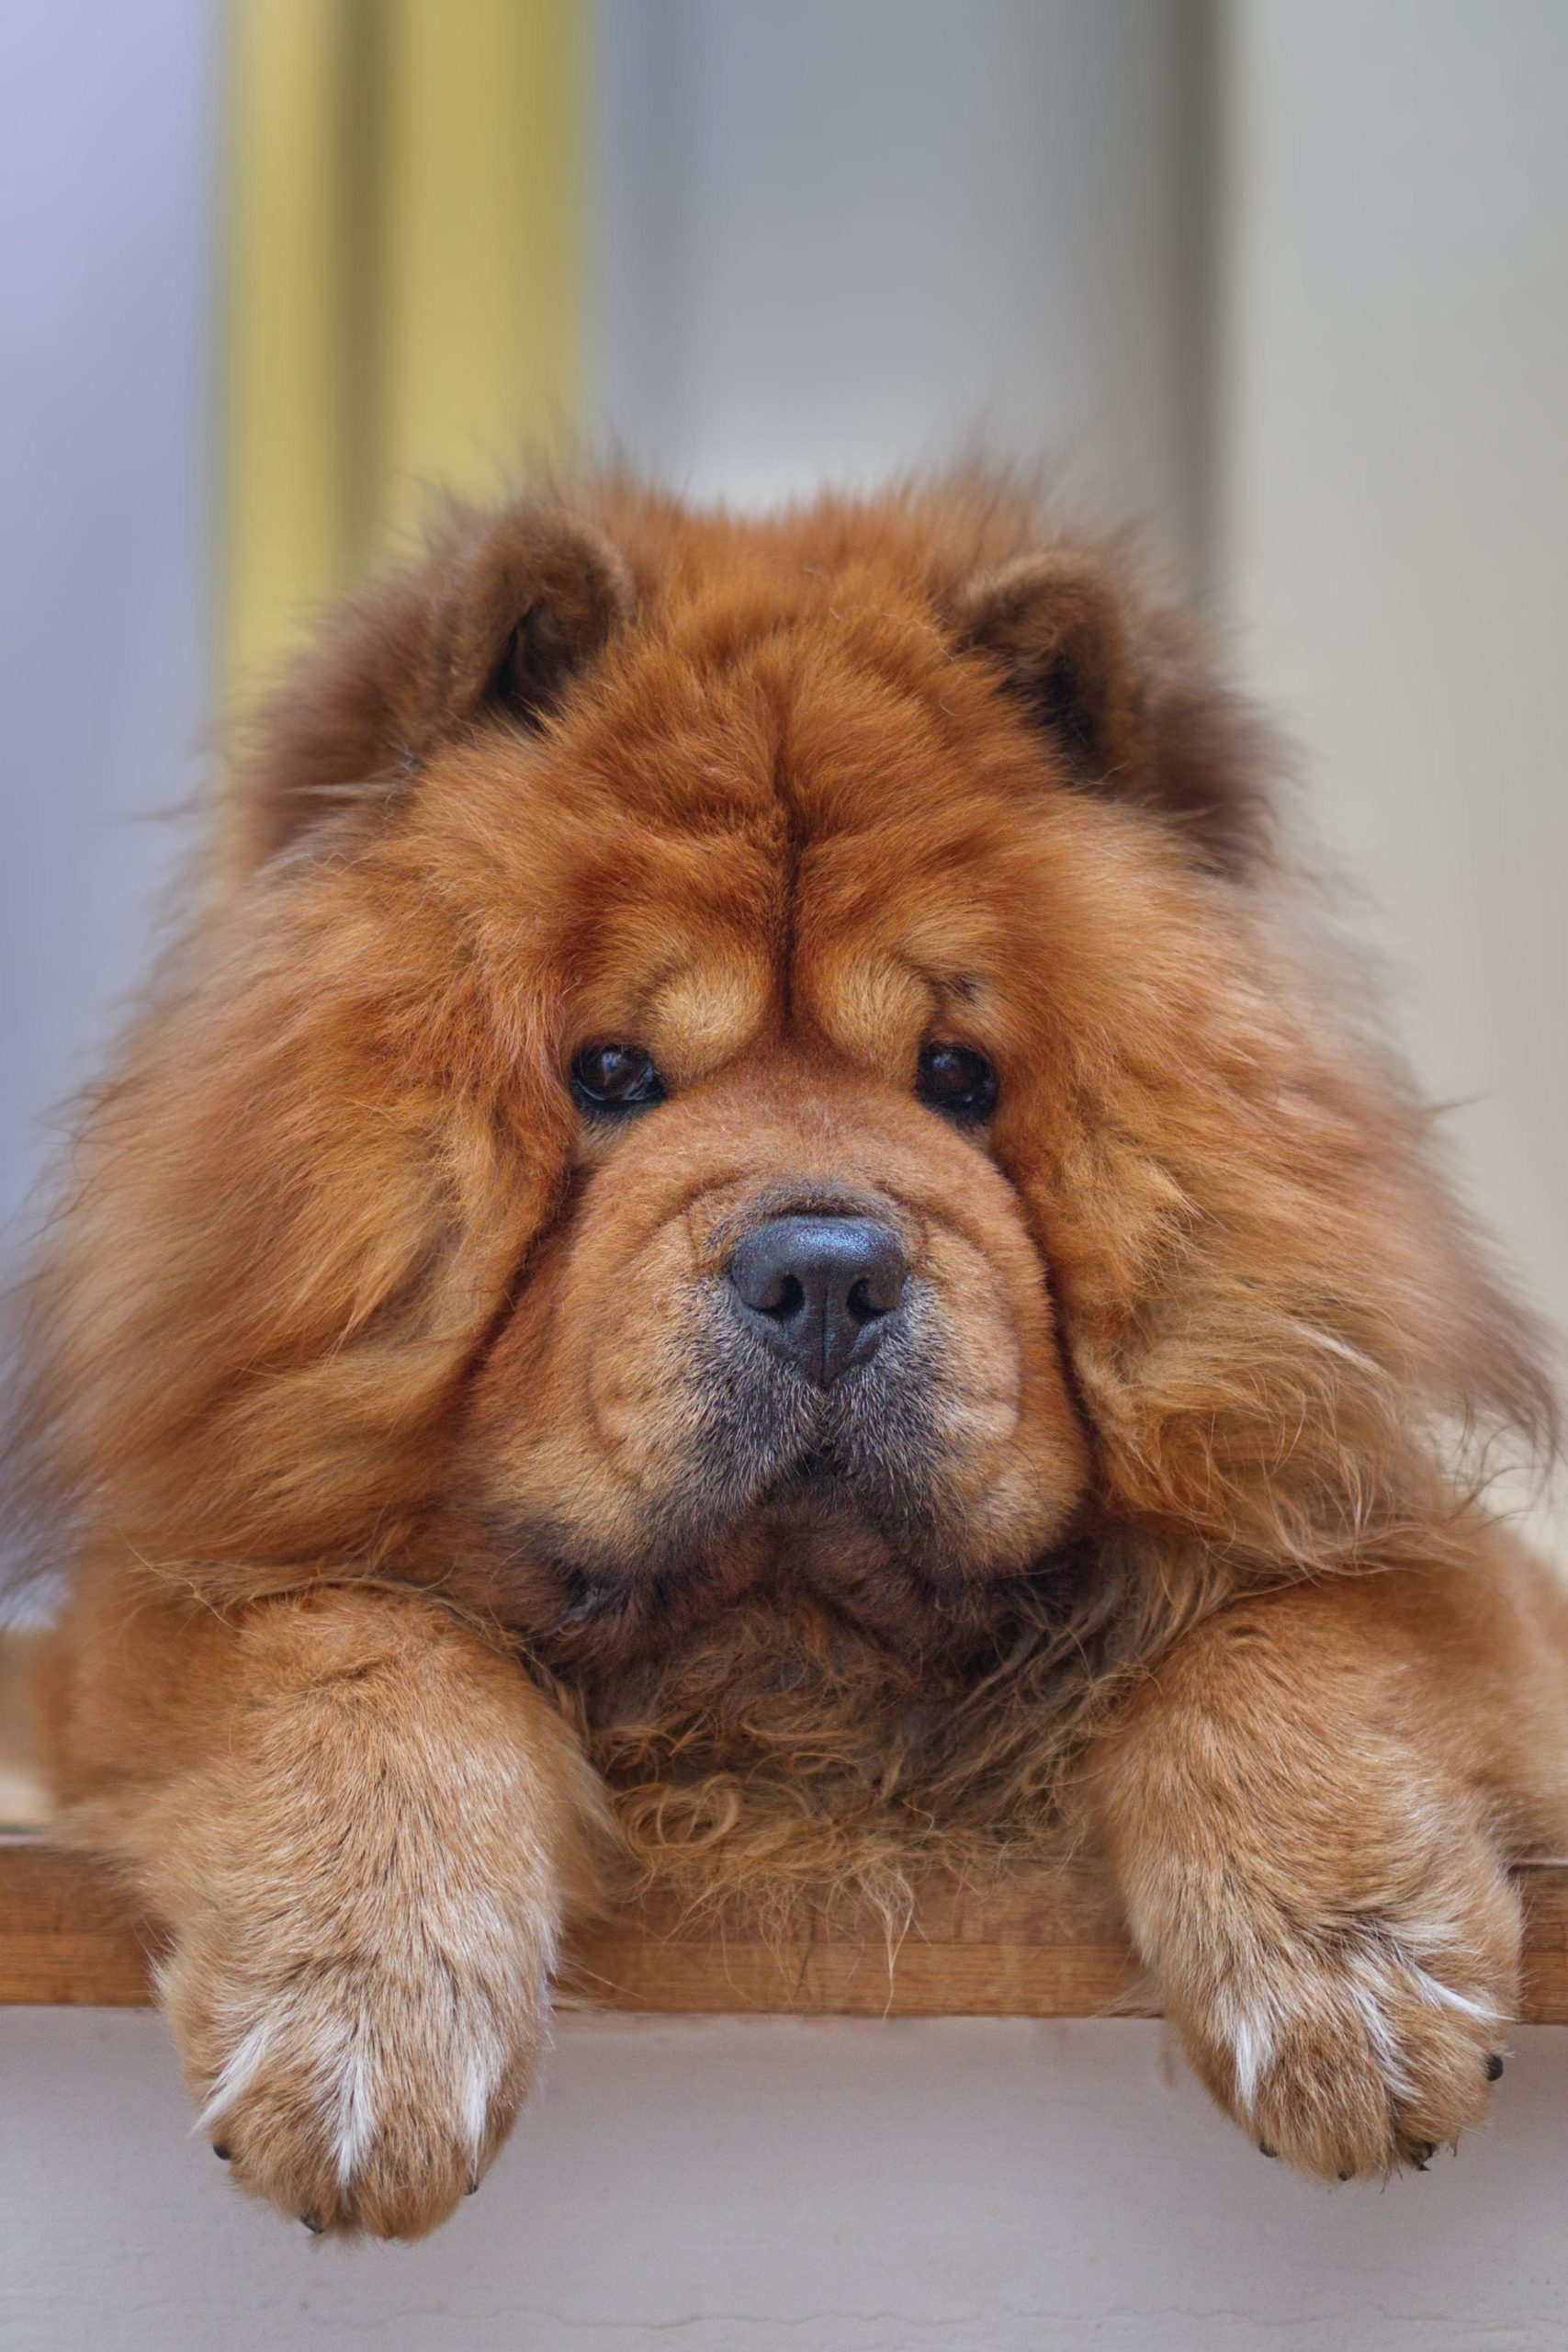 photo of brown fluffy dog for dog photography